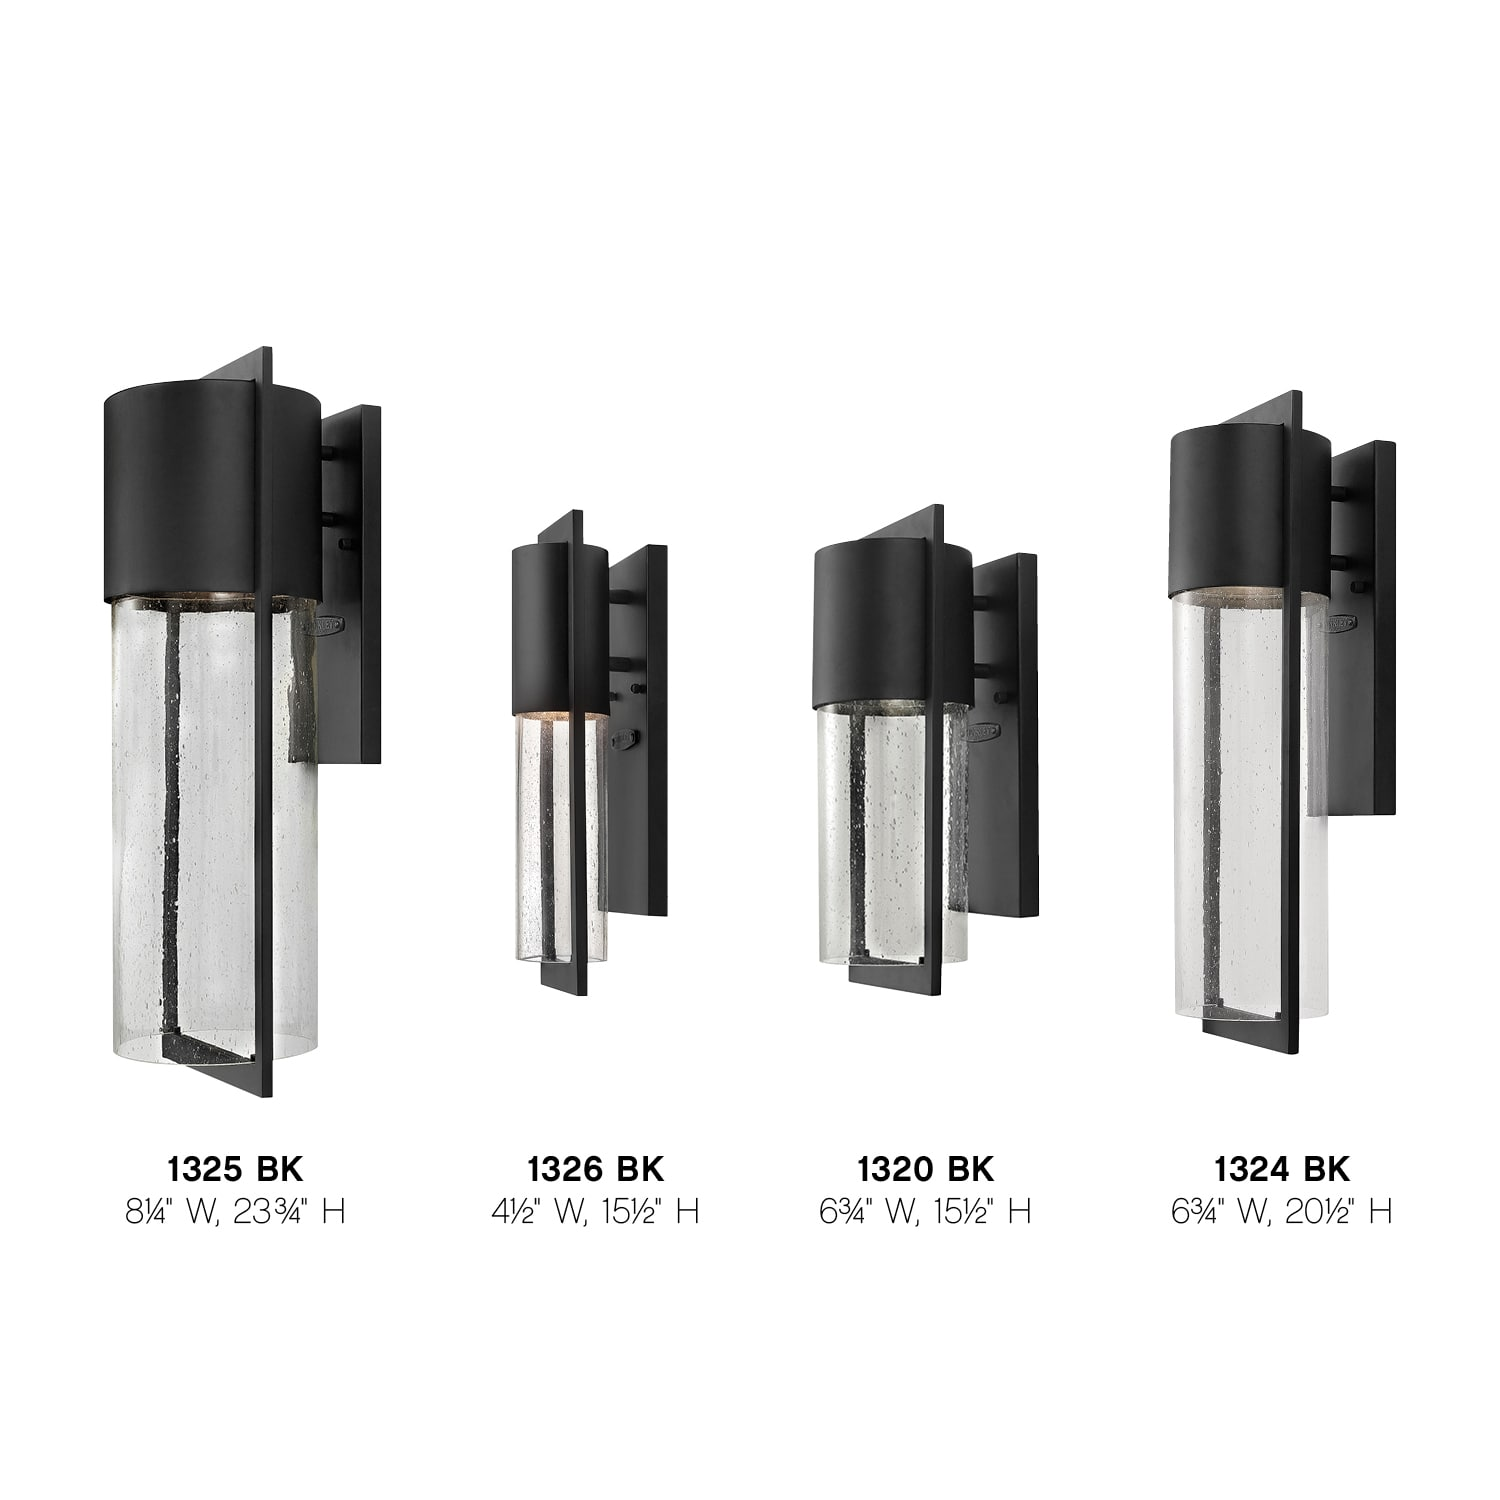 Hinkley Lighting 1326bk Black 1 Light 15 2 Tall Dark Sky Outdoor Installing Wall Mounted Sconce From The Shelter Collection